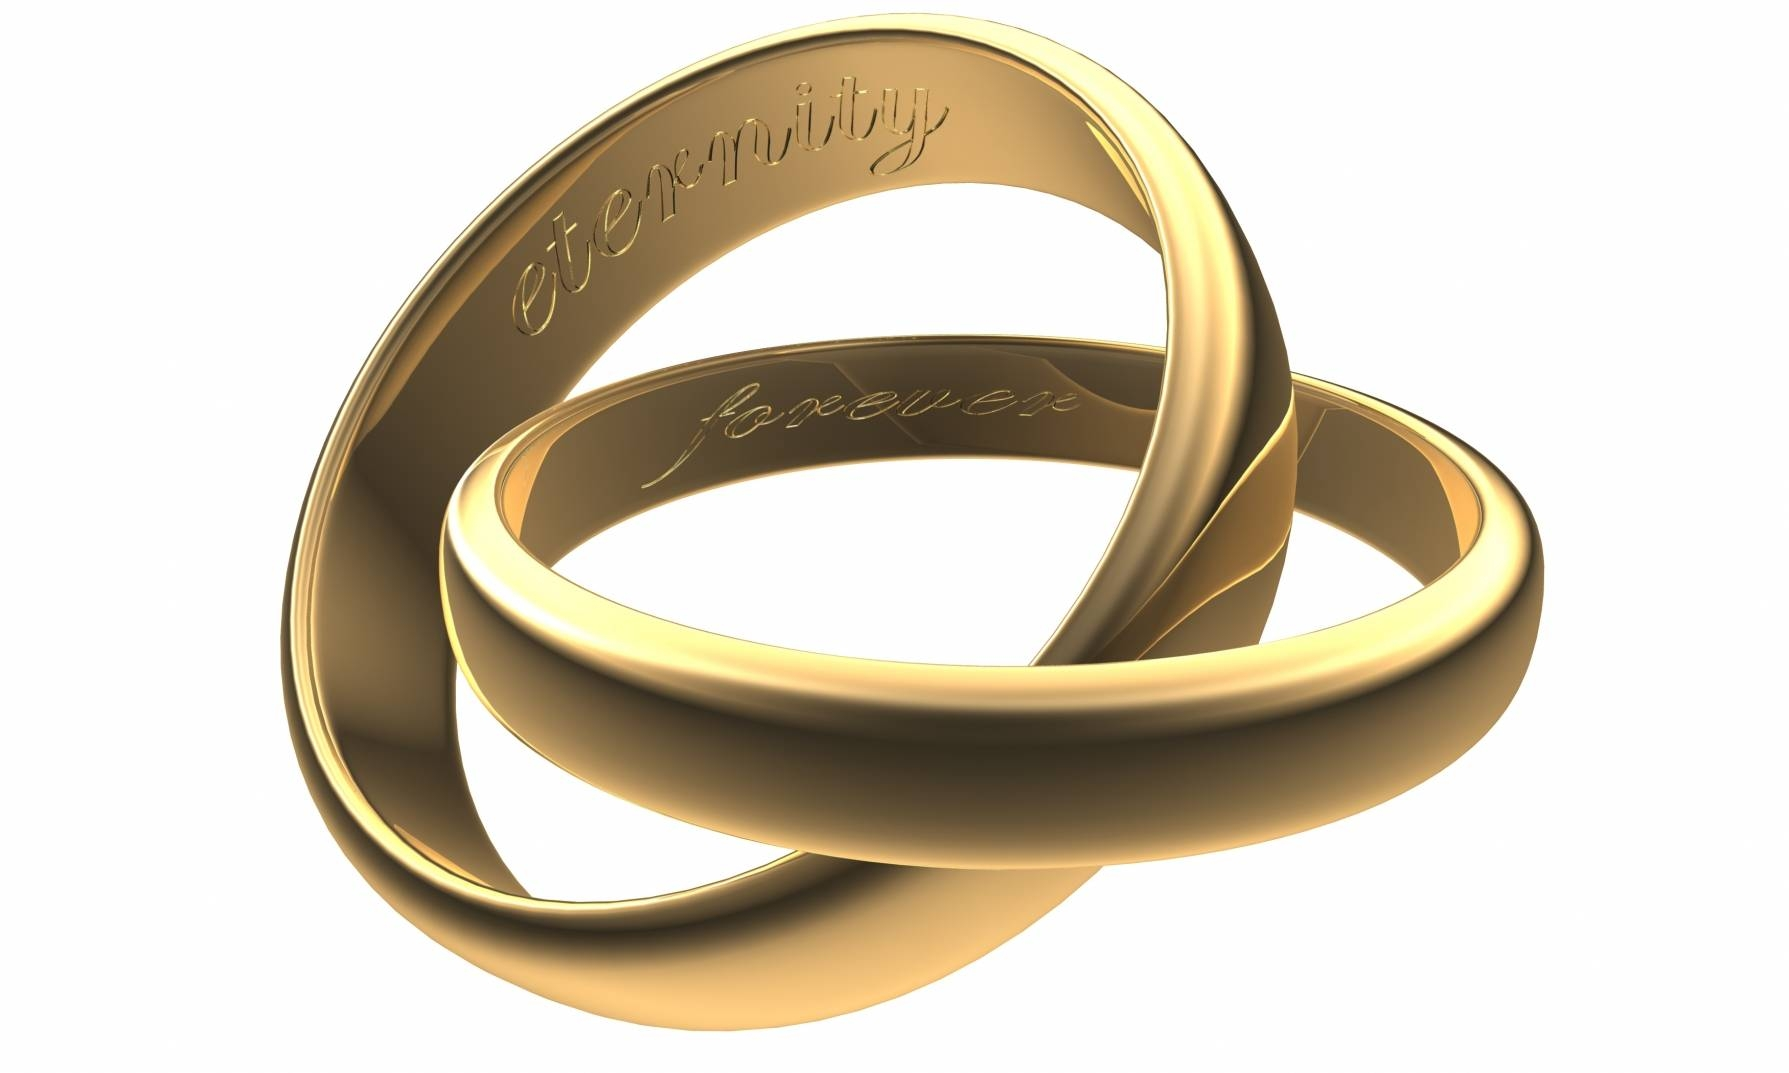 Engraved Wedding Bands | Wedding Band Engraving Within Engravings On Wedding Rings (View 5 of 15)